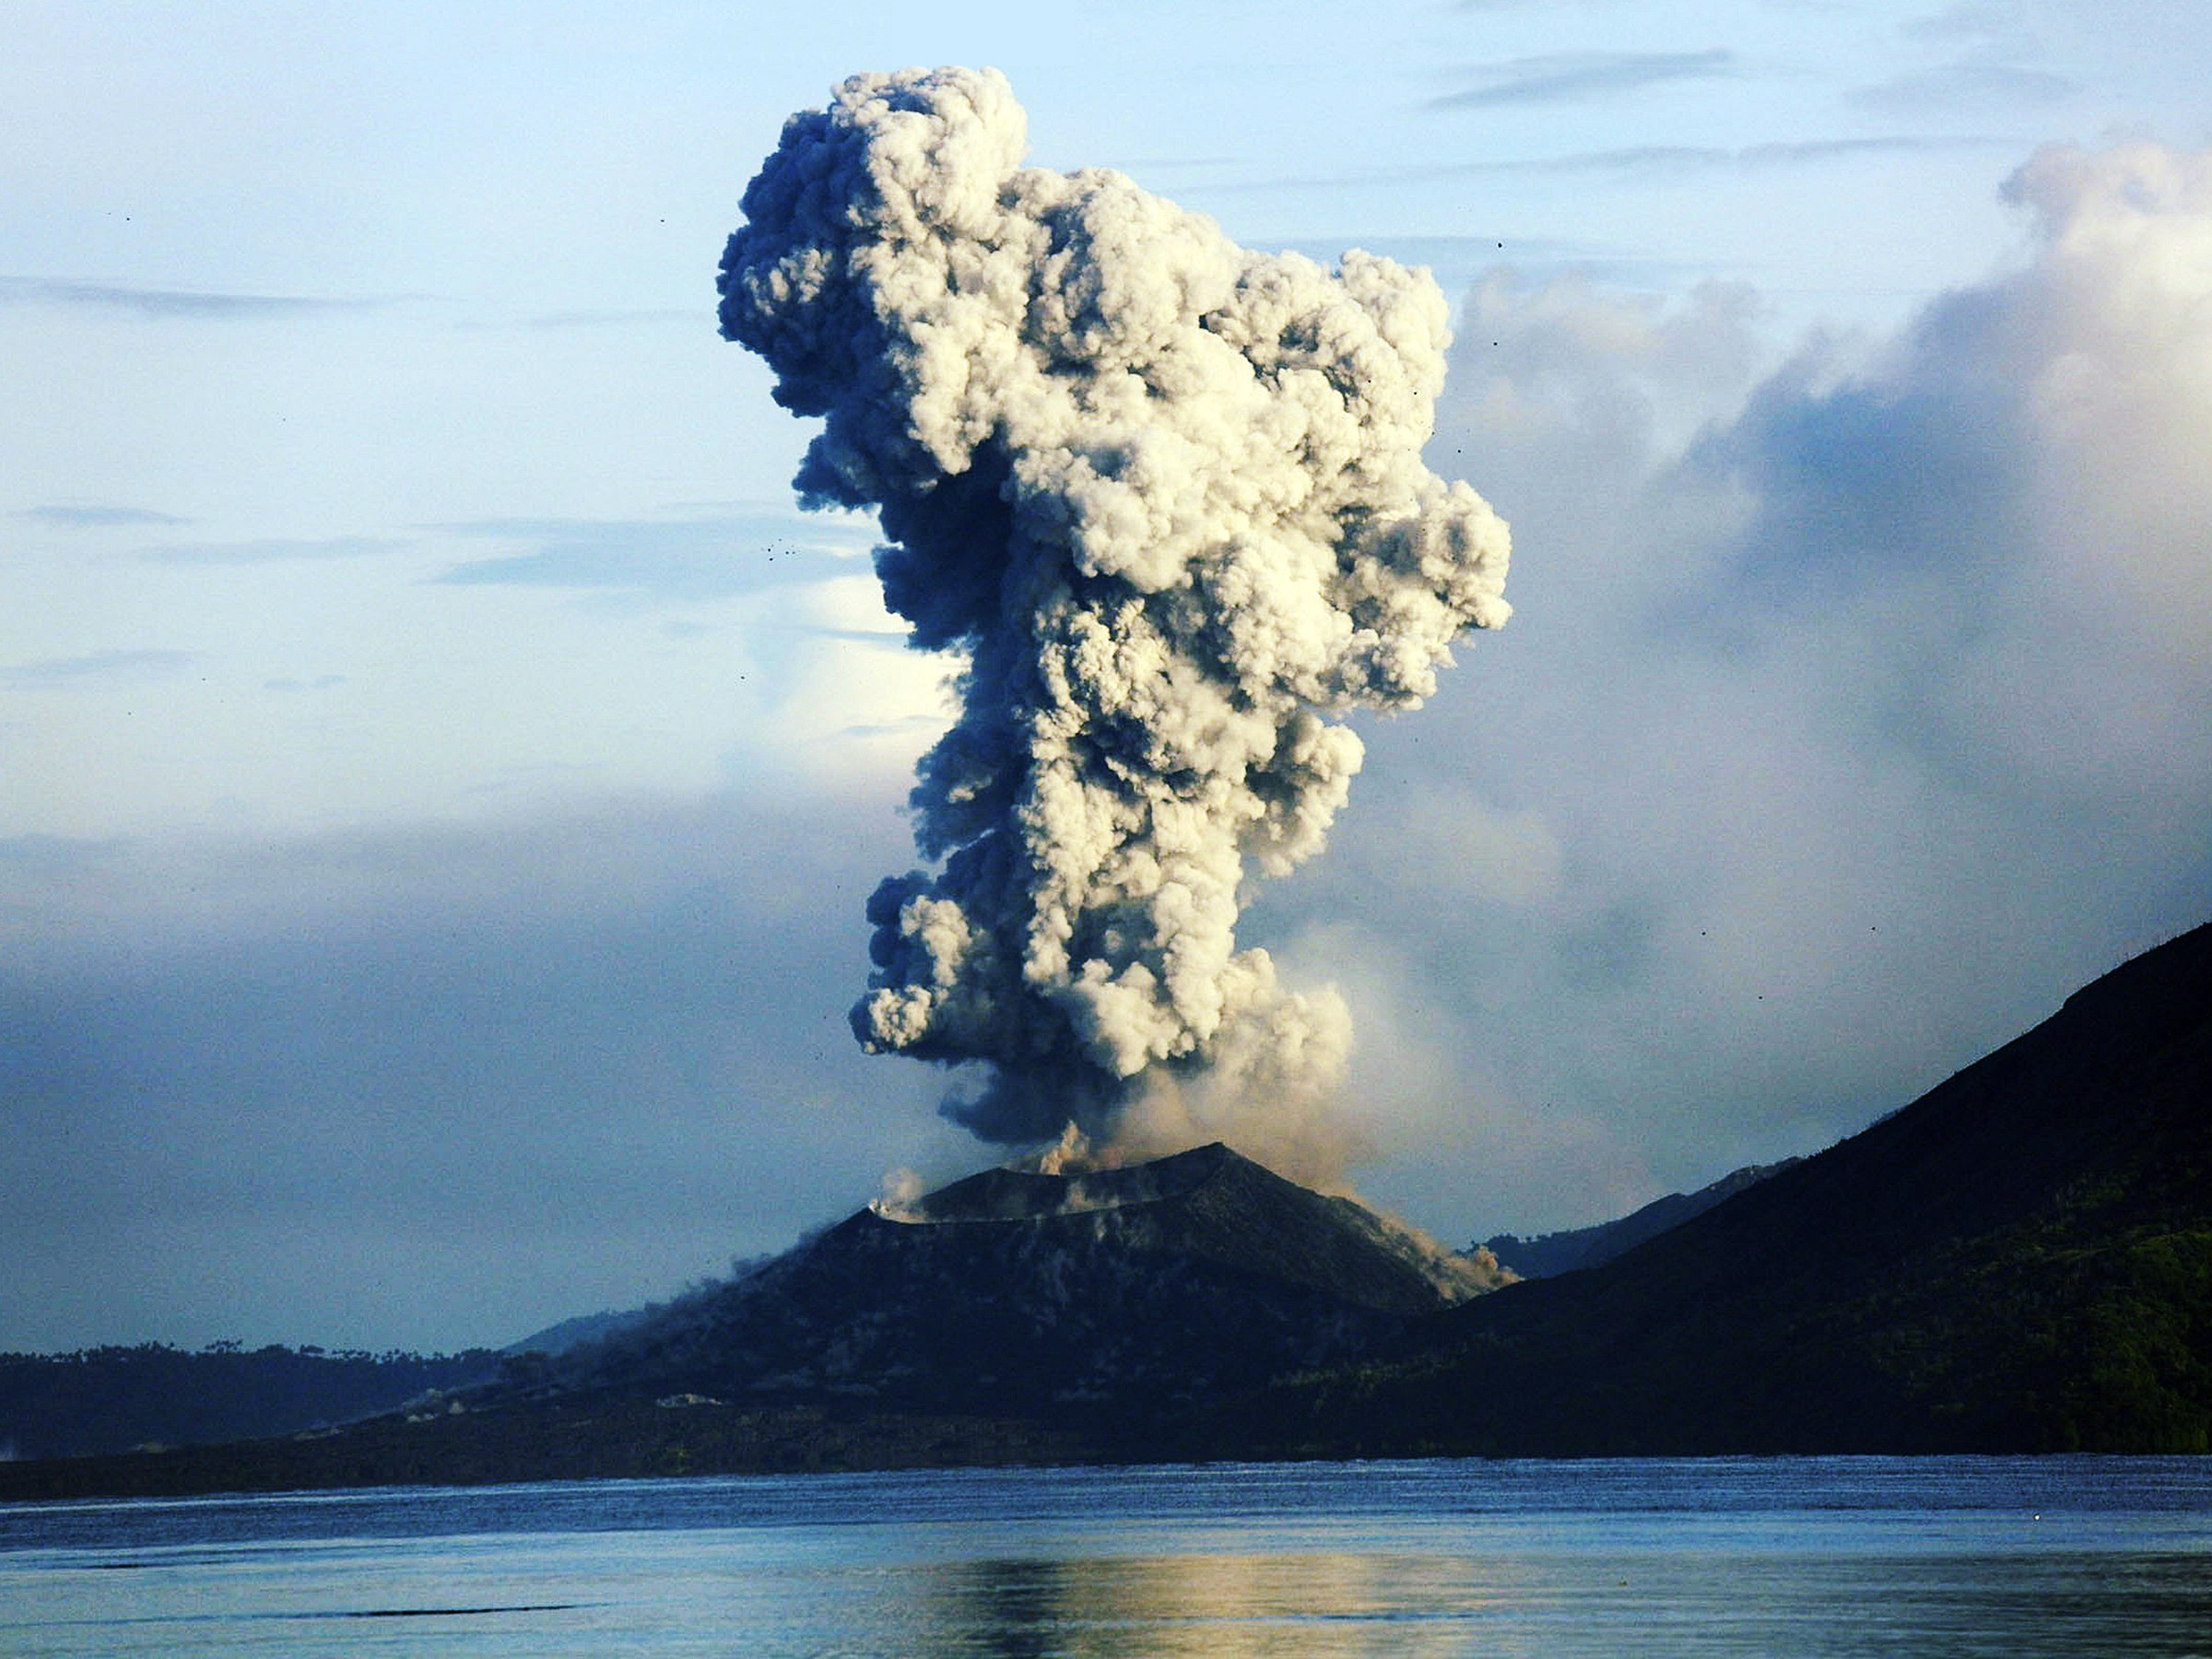 Papua New Guinea Hides Some of the Most Dangerous Volcanoes on Earth.